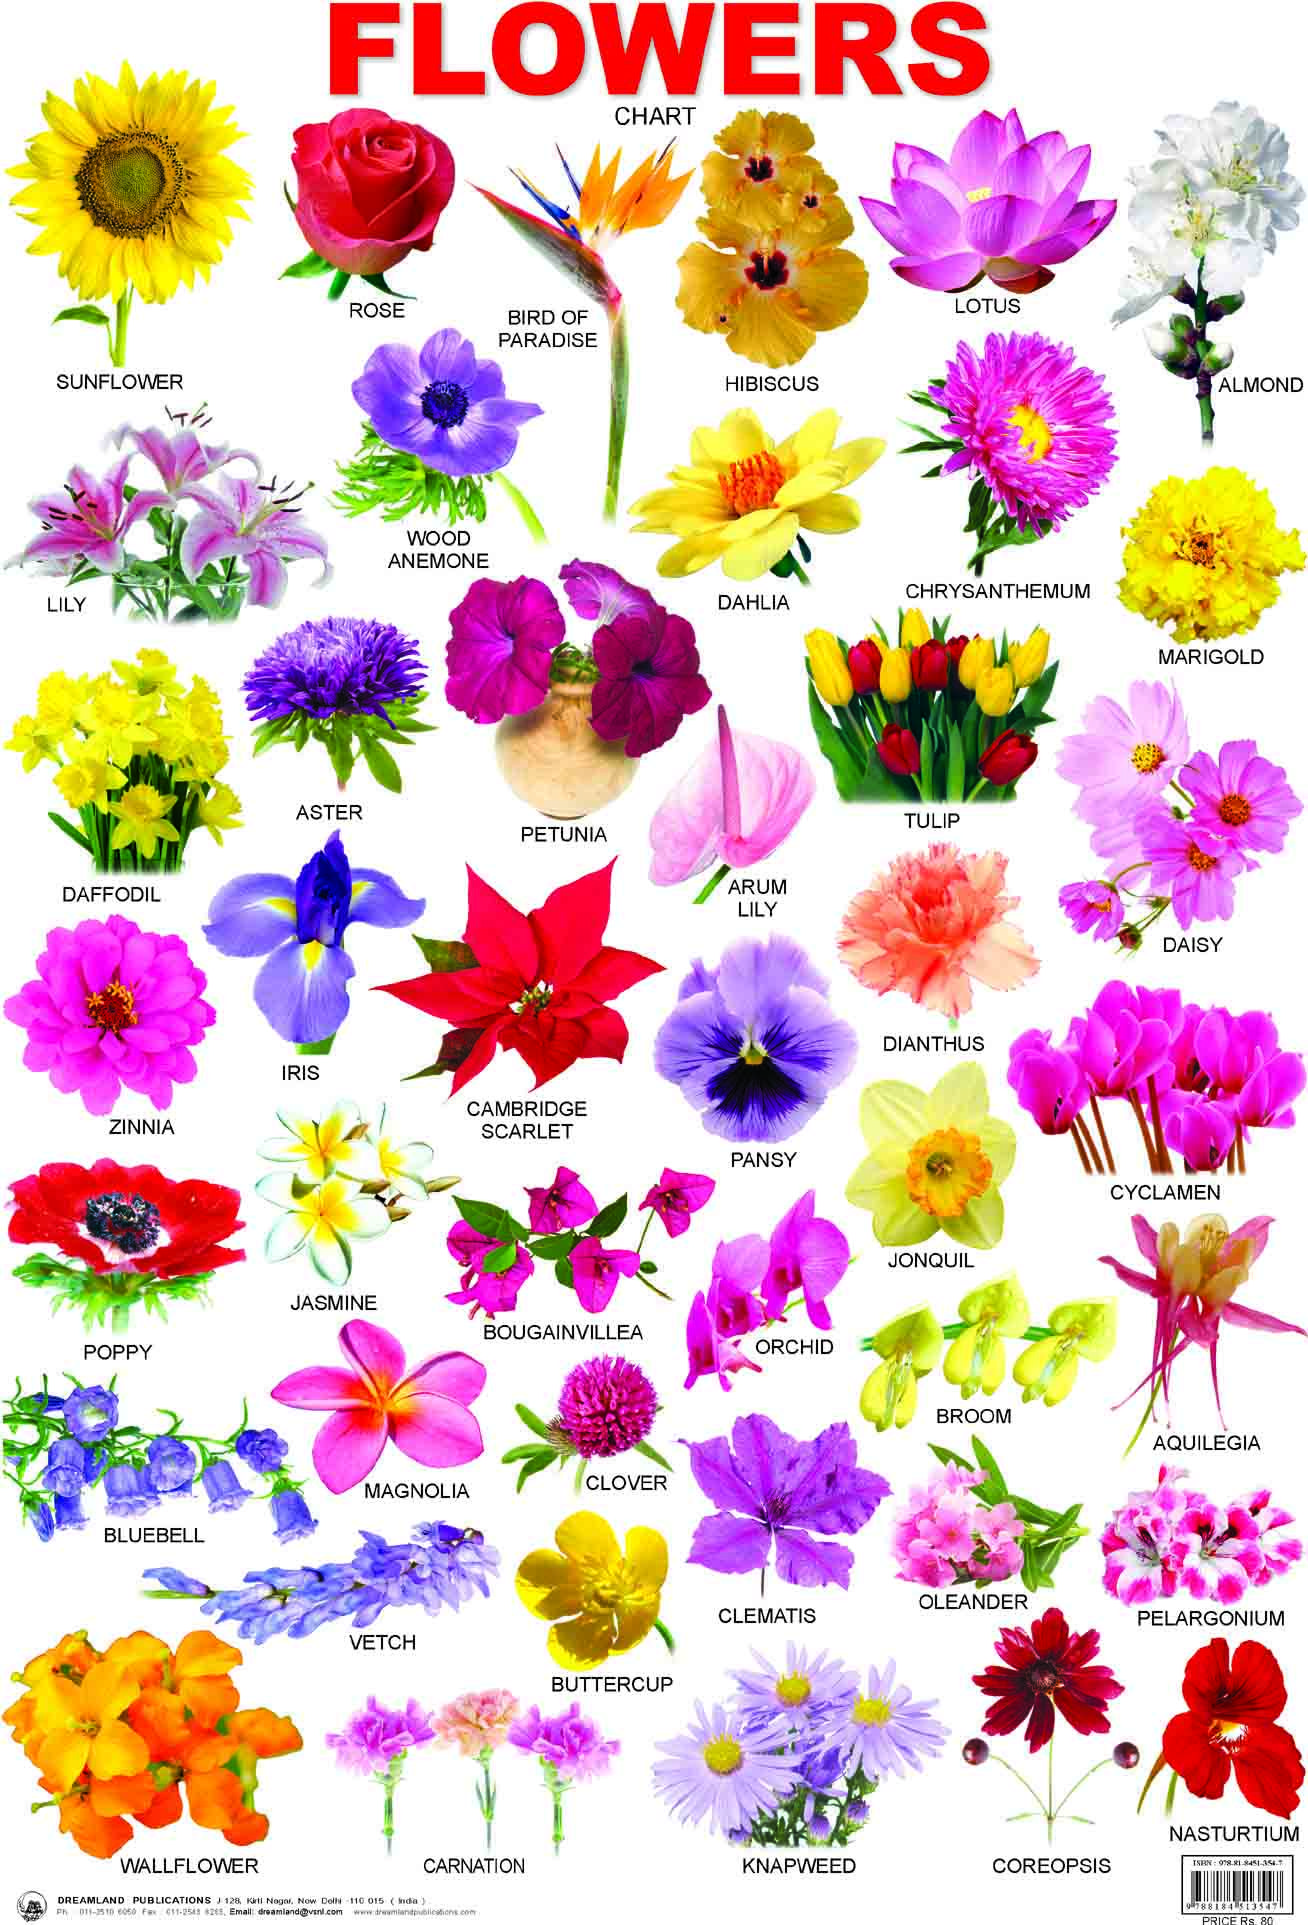 Indian Flower Name List With Image Picture In France For Girl Blue Hindi Names Female Japanese Korean A All Flowers Name Indian Flower Names Flower Types Chart